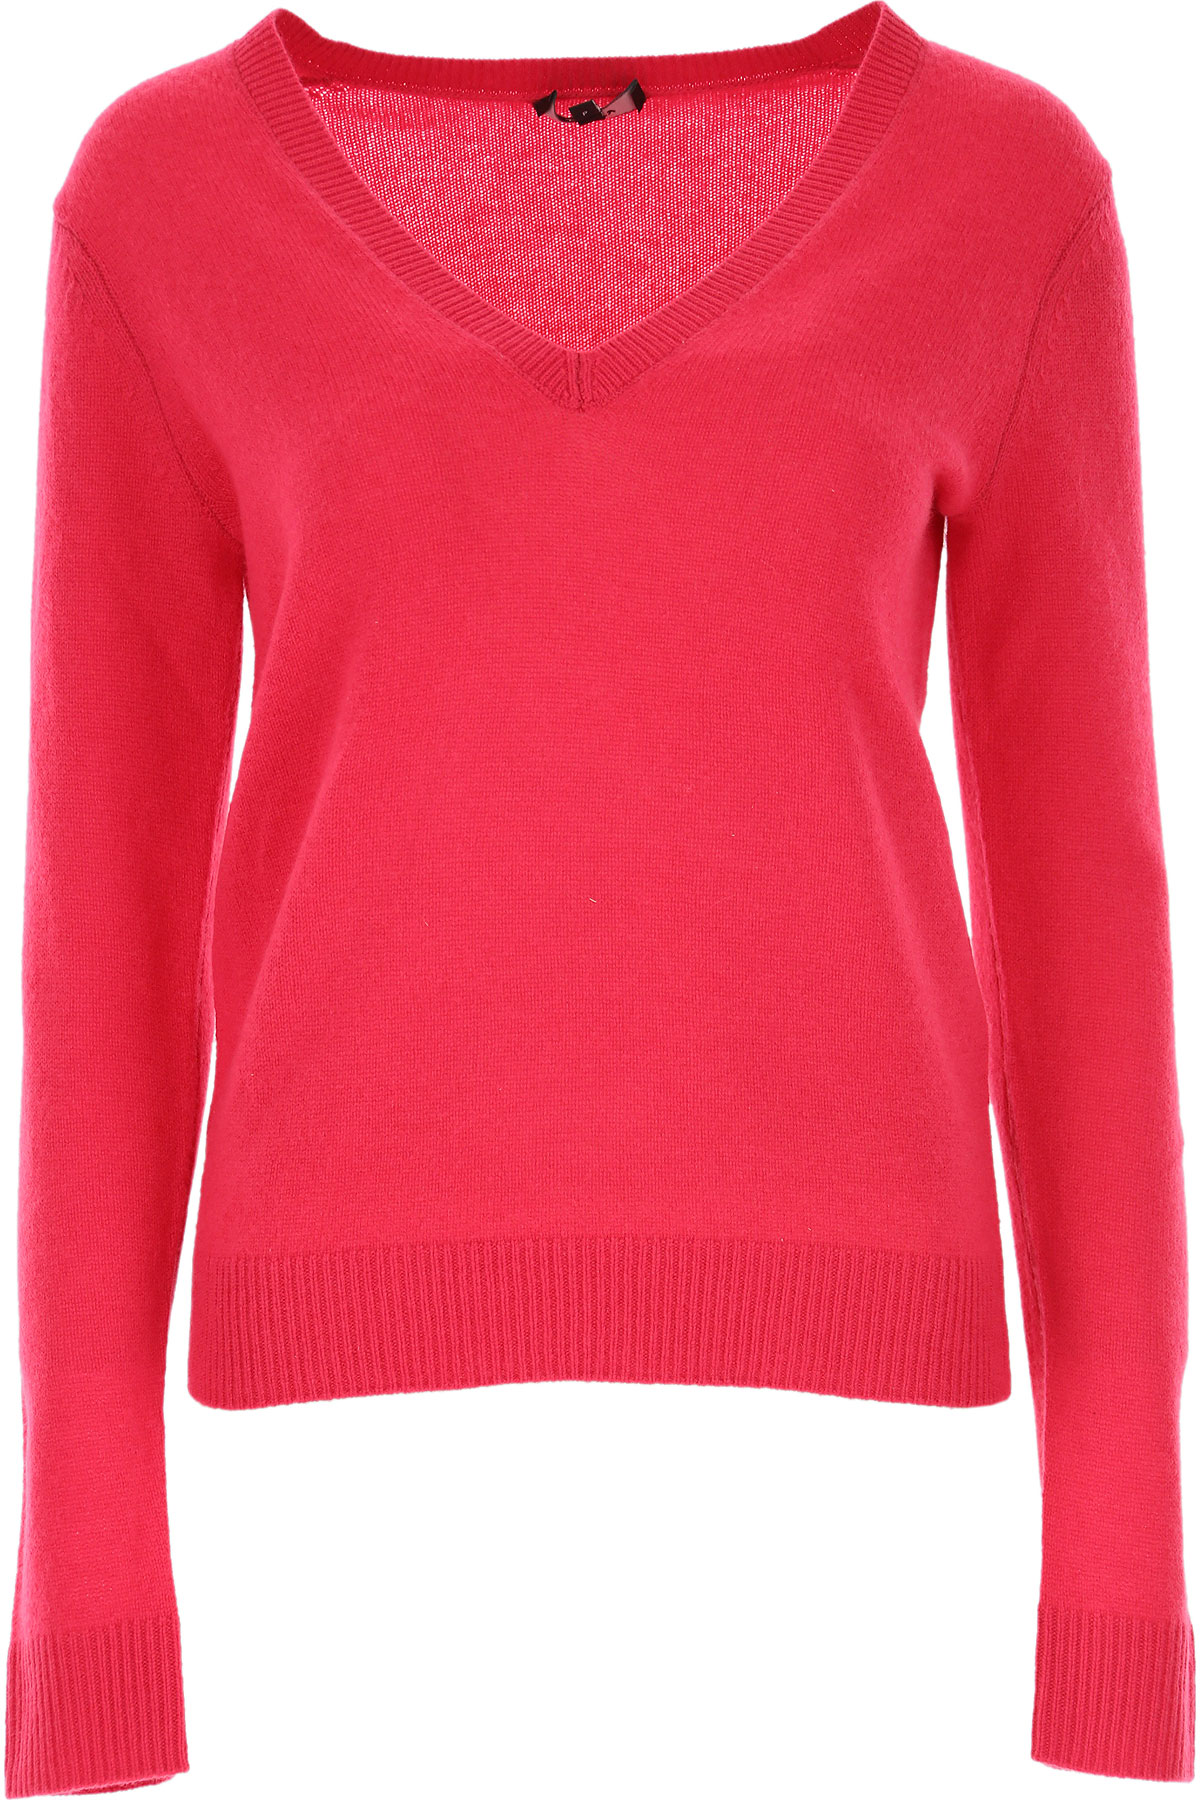 Theory Sweater for Women Jumper On Sale, Bright Magenta, Cashmere, 2019, 4 6